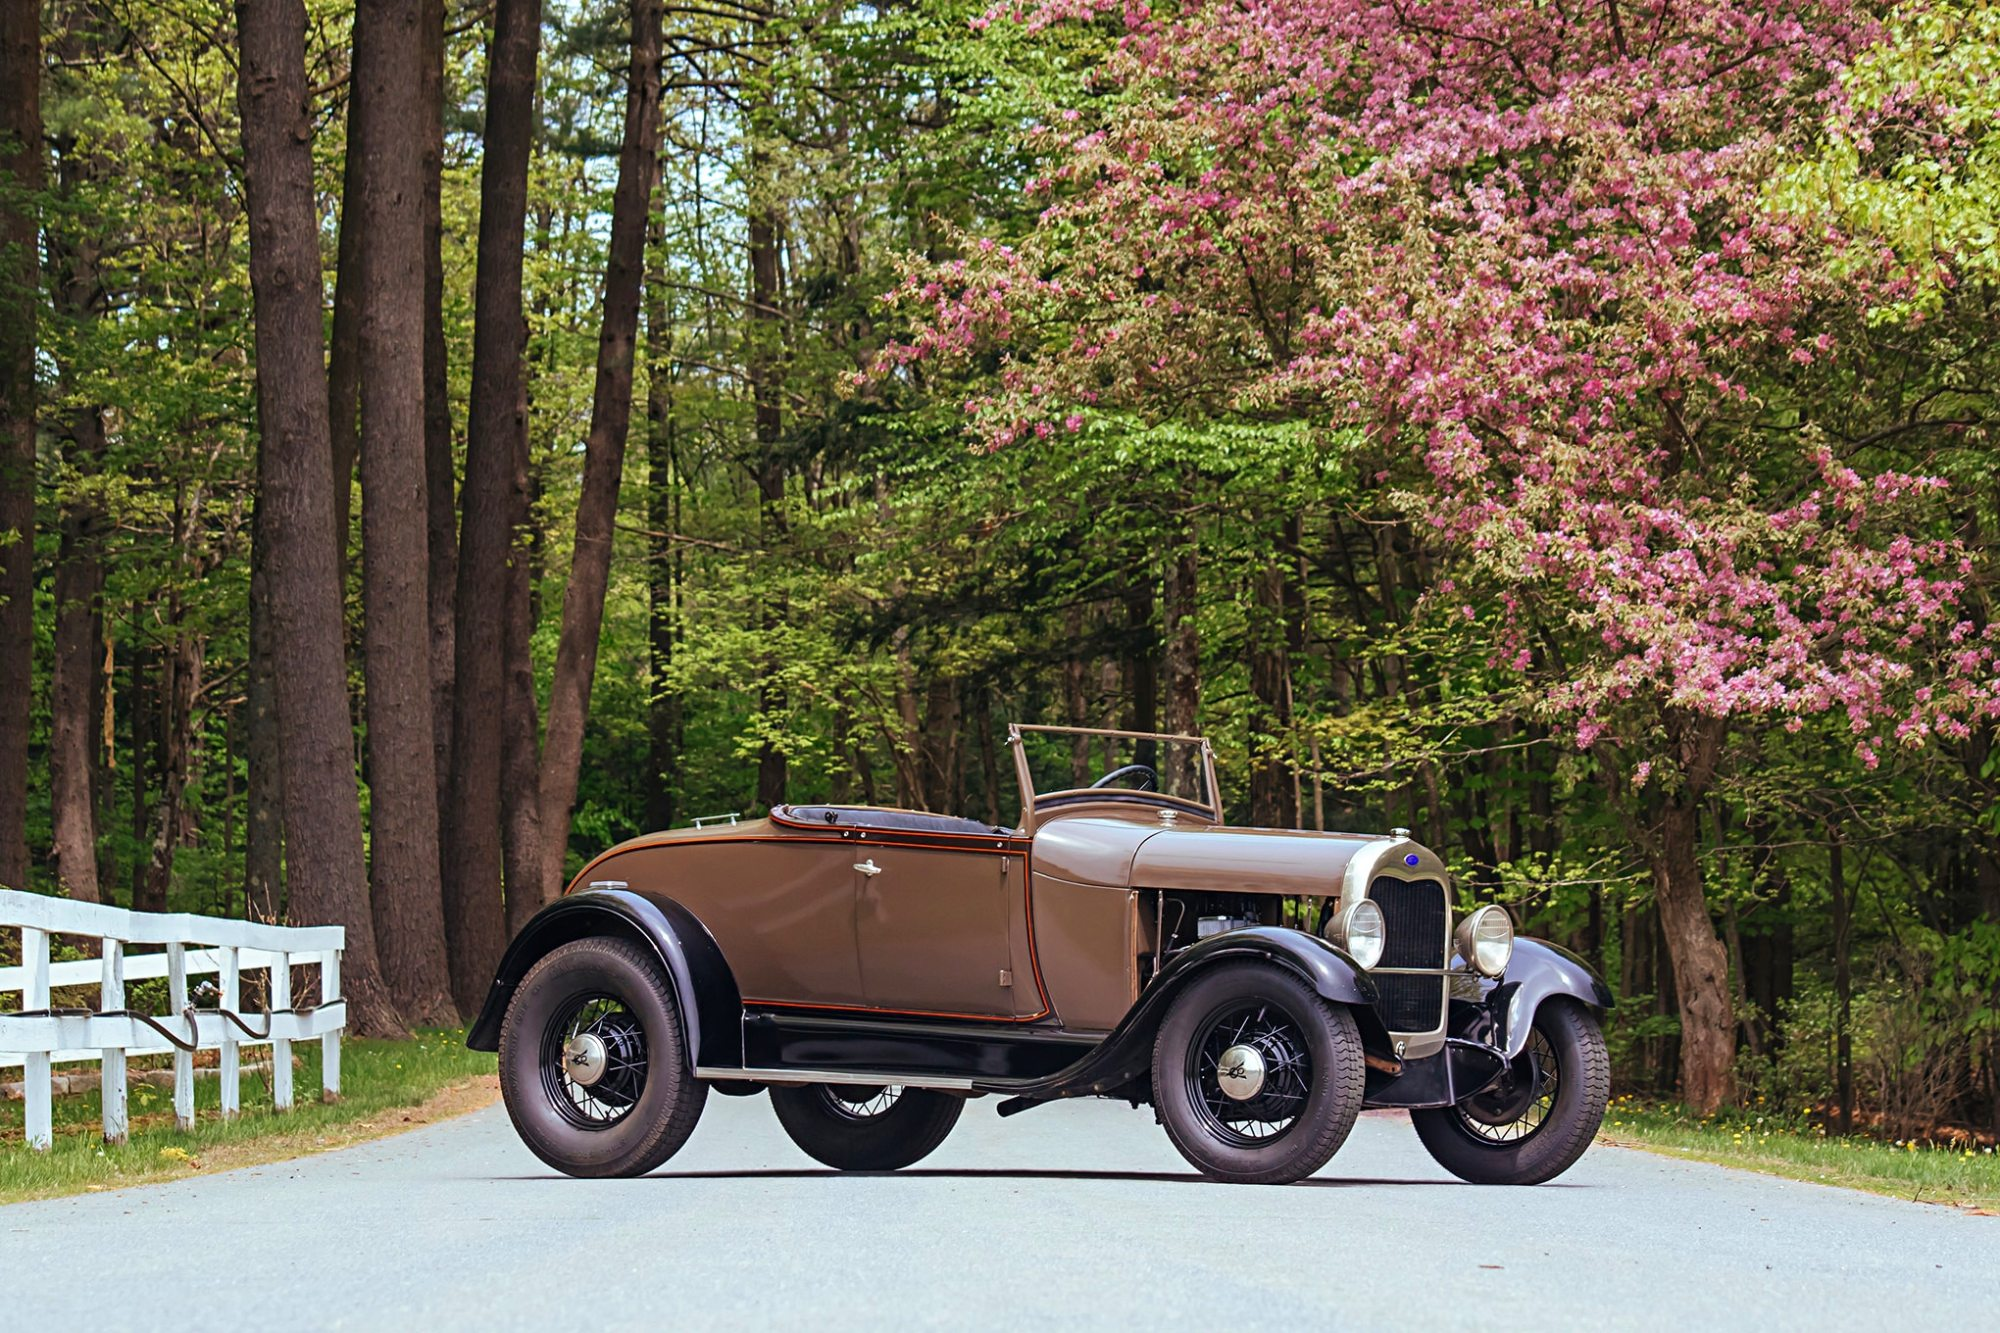 hight resolution of barn find 1929 ford model a roadster gets new life as traditional hot rod